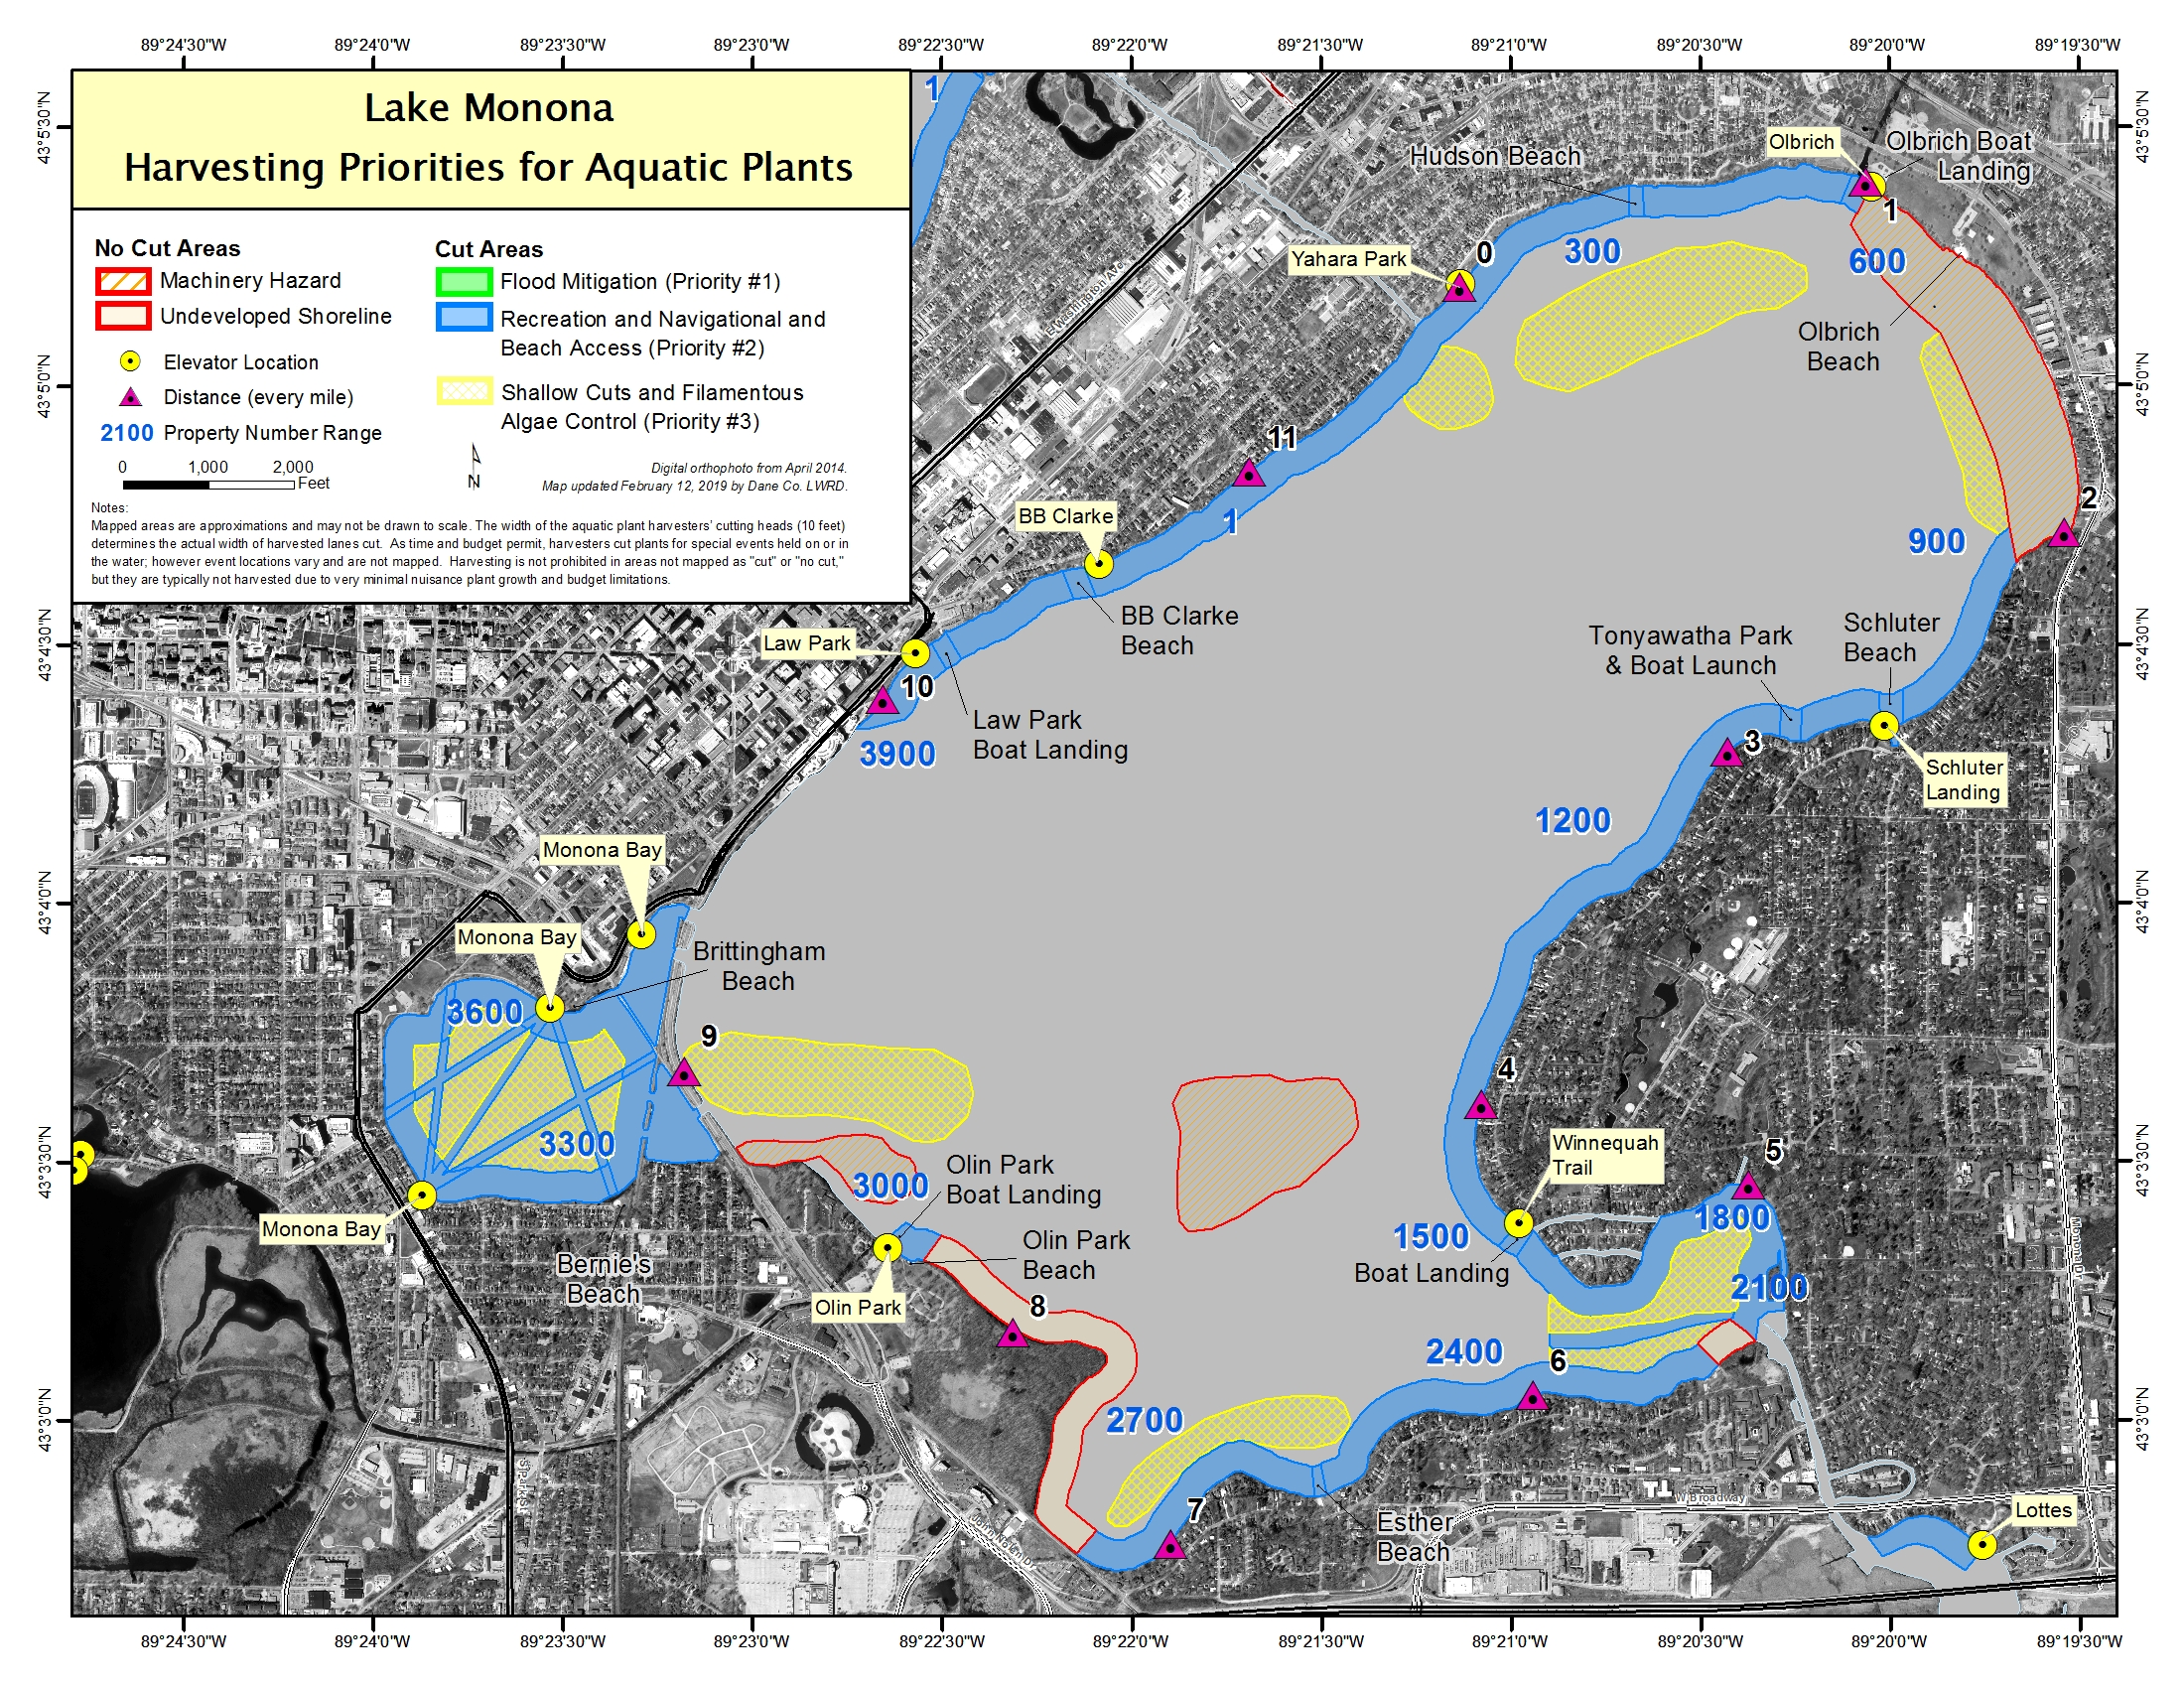 Aquatic plant management priorities on Lake Monona.